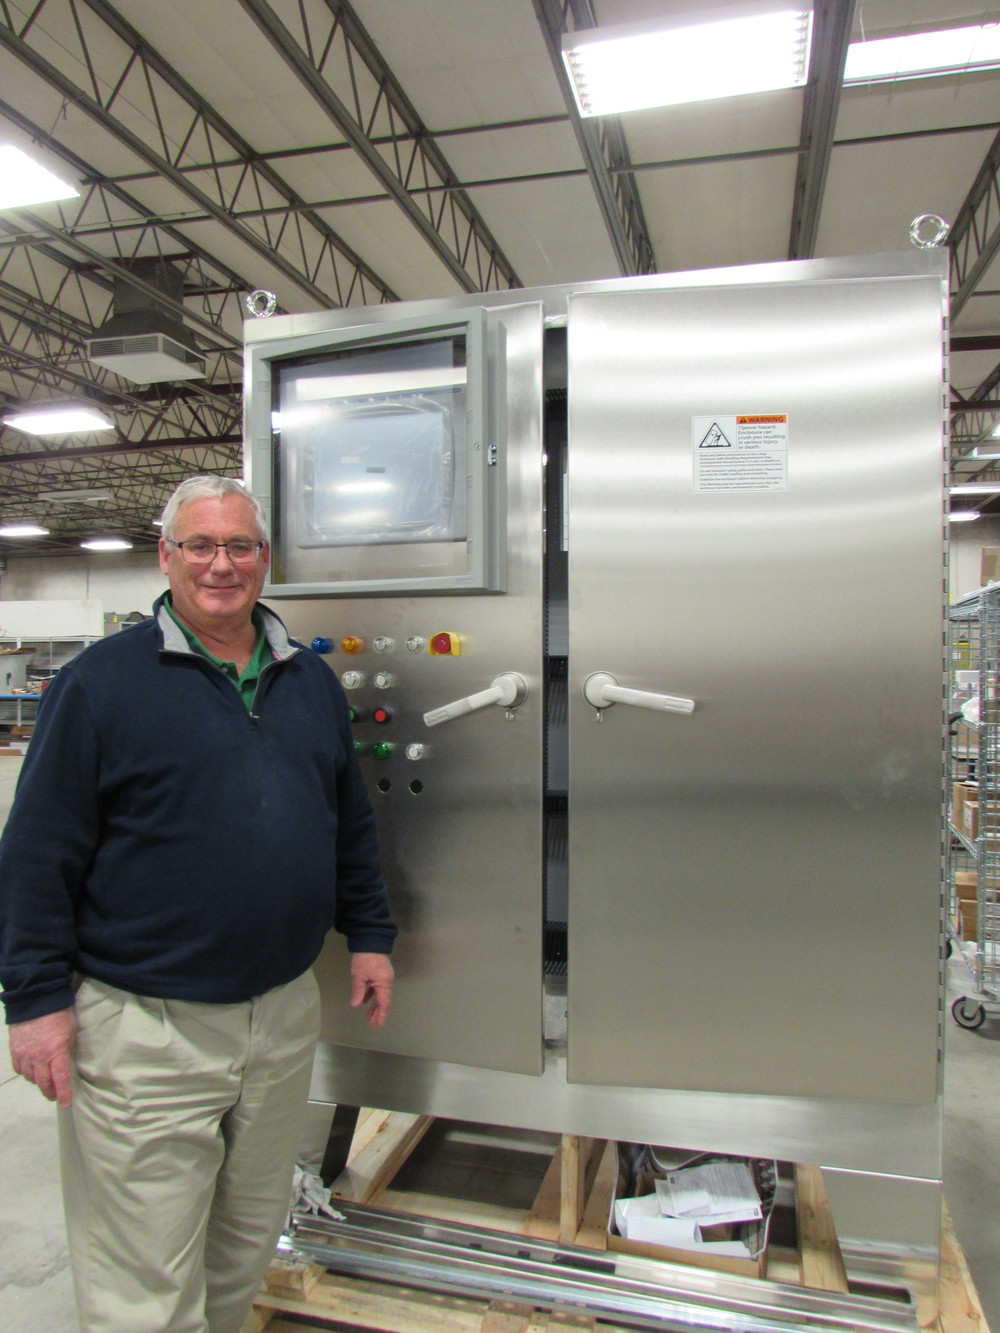 John Quinn standing next to a Hoffman stainless steel enclosure.